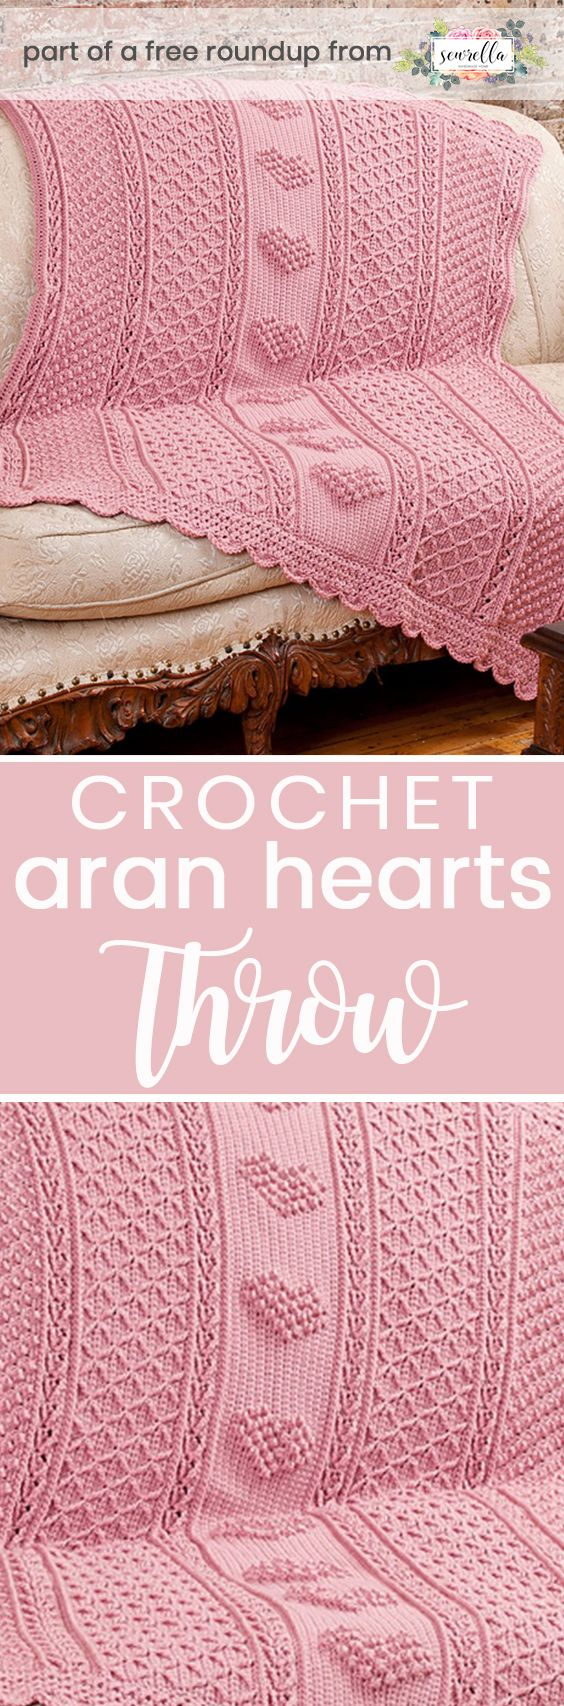 The Best Free Crochet Baby Blankets for Girls | Pinterest ...